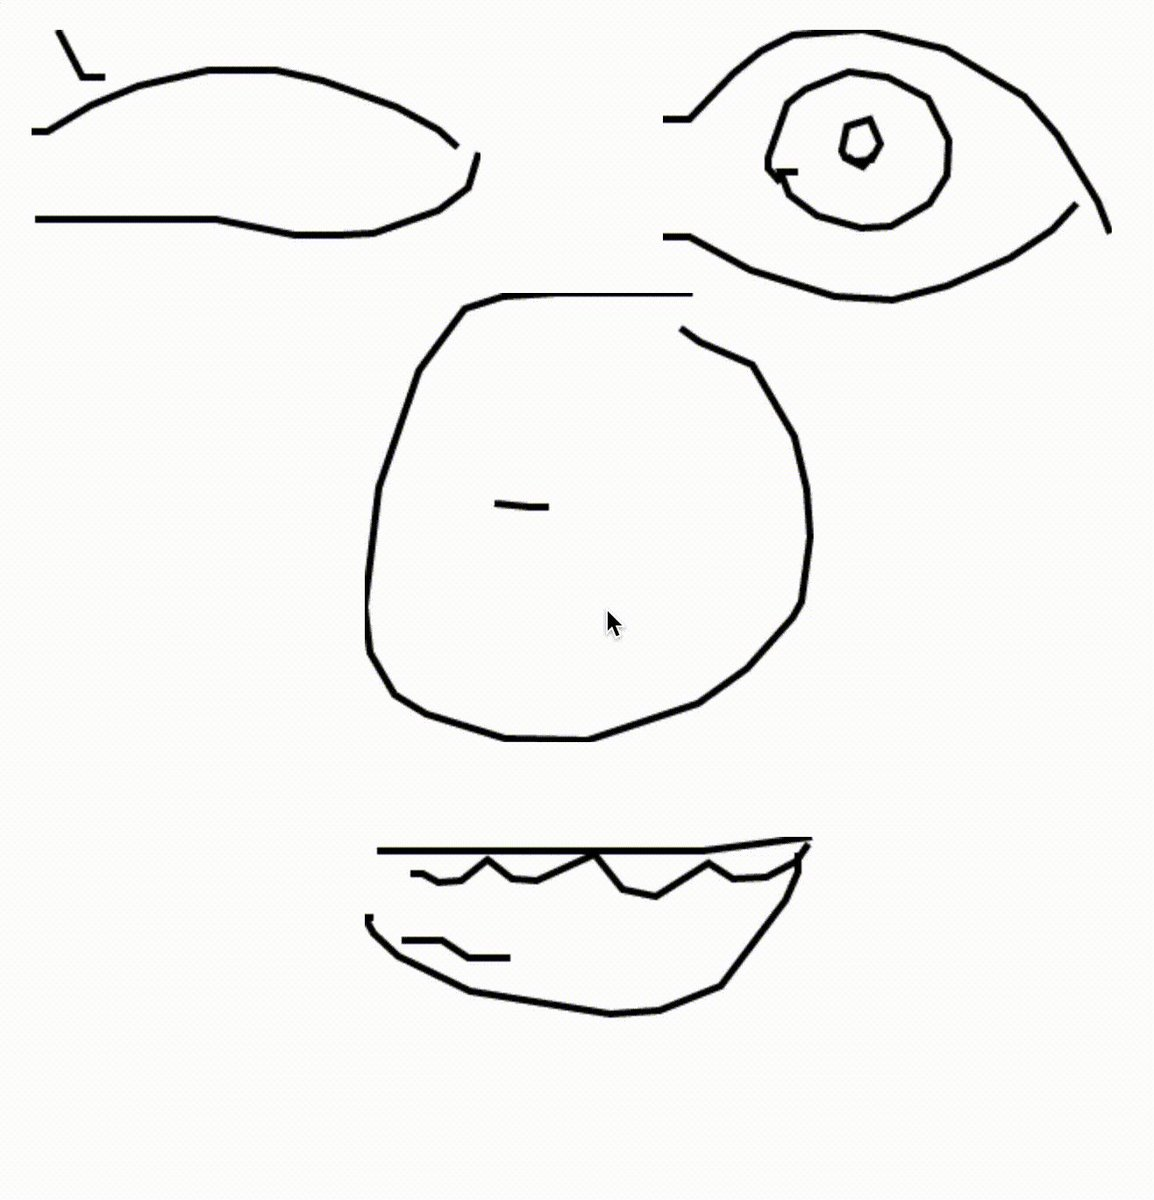 Generating faces with quickdraw.withgoogle.com/data